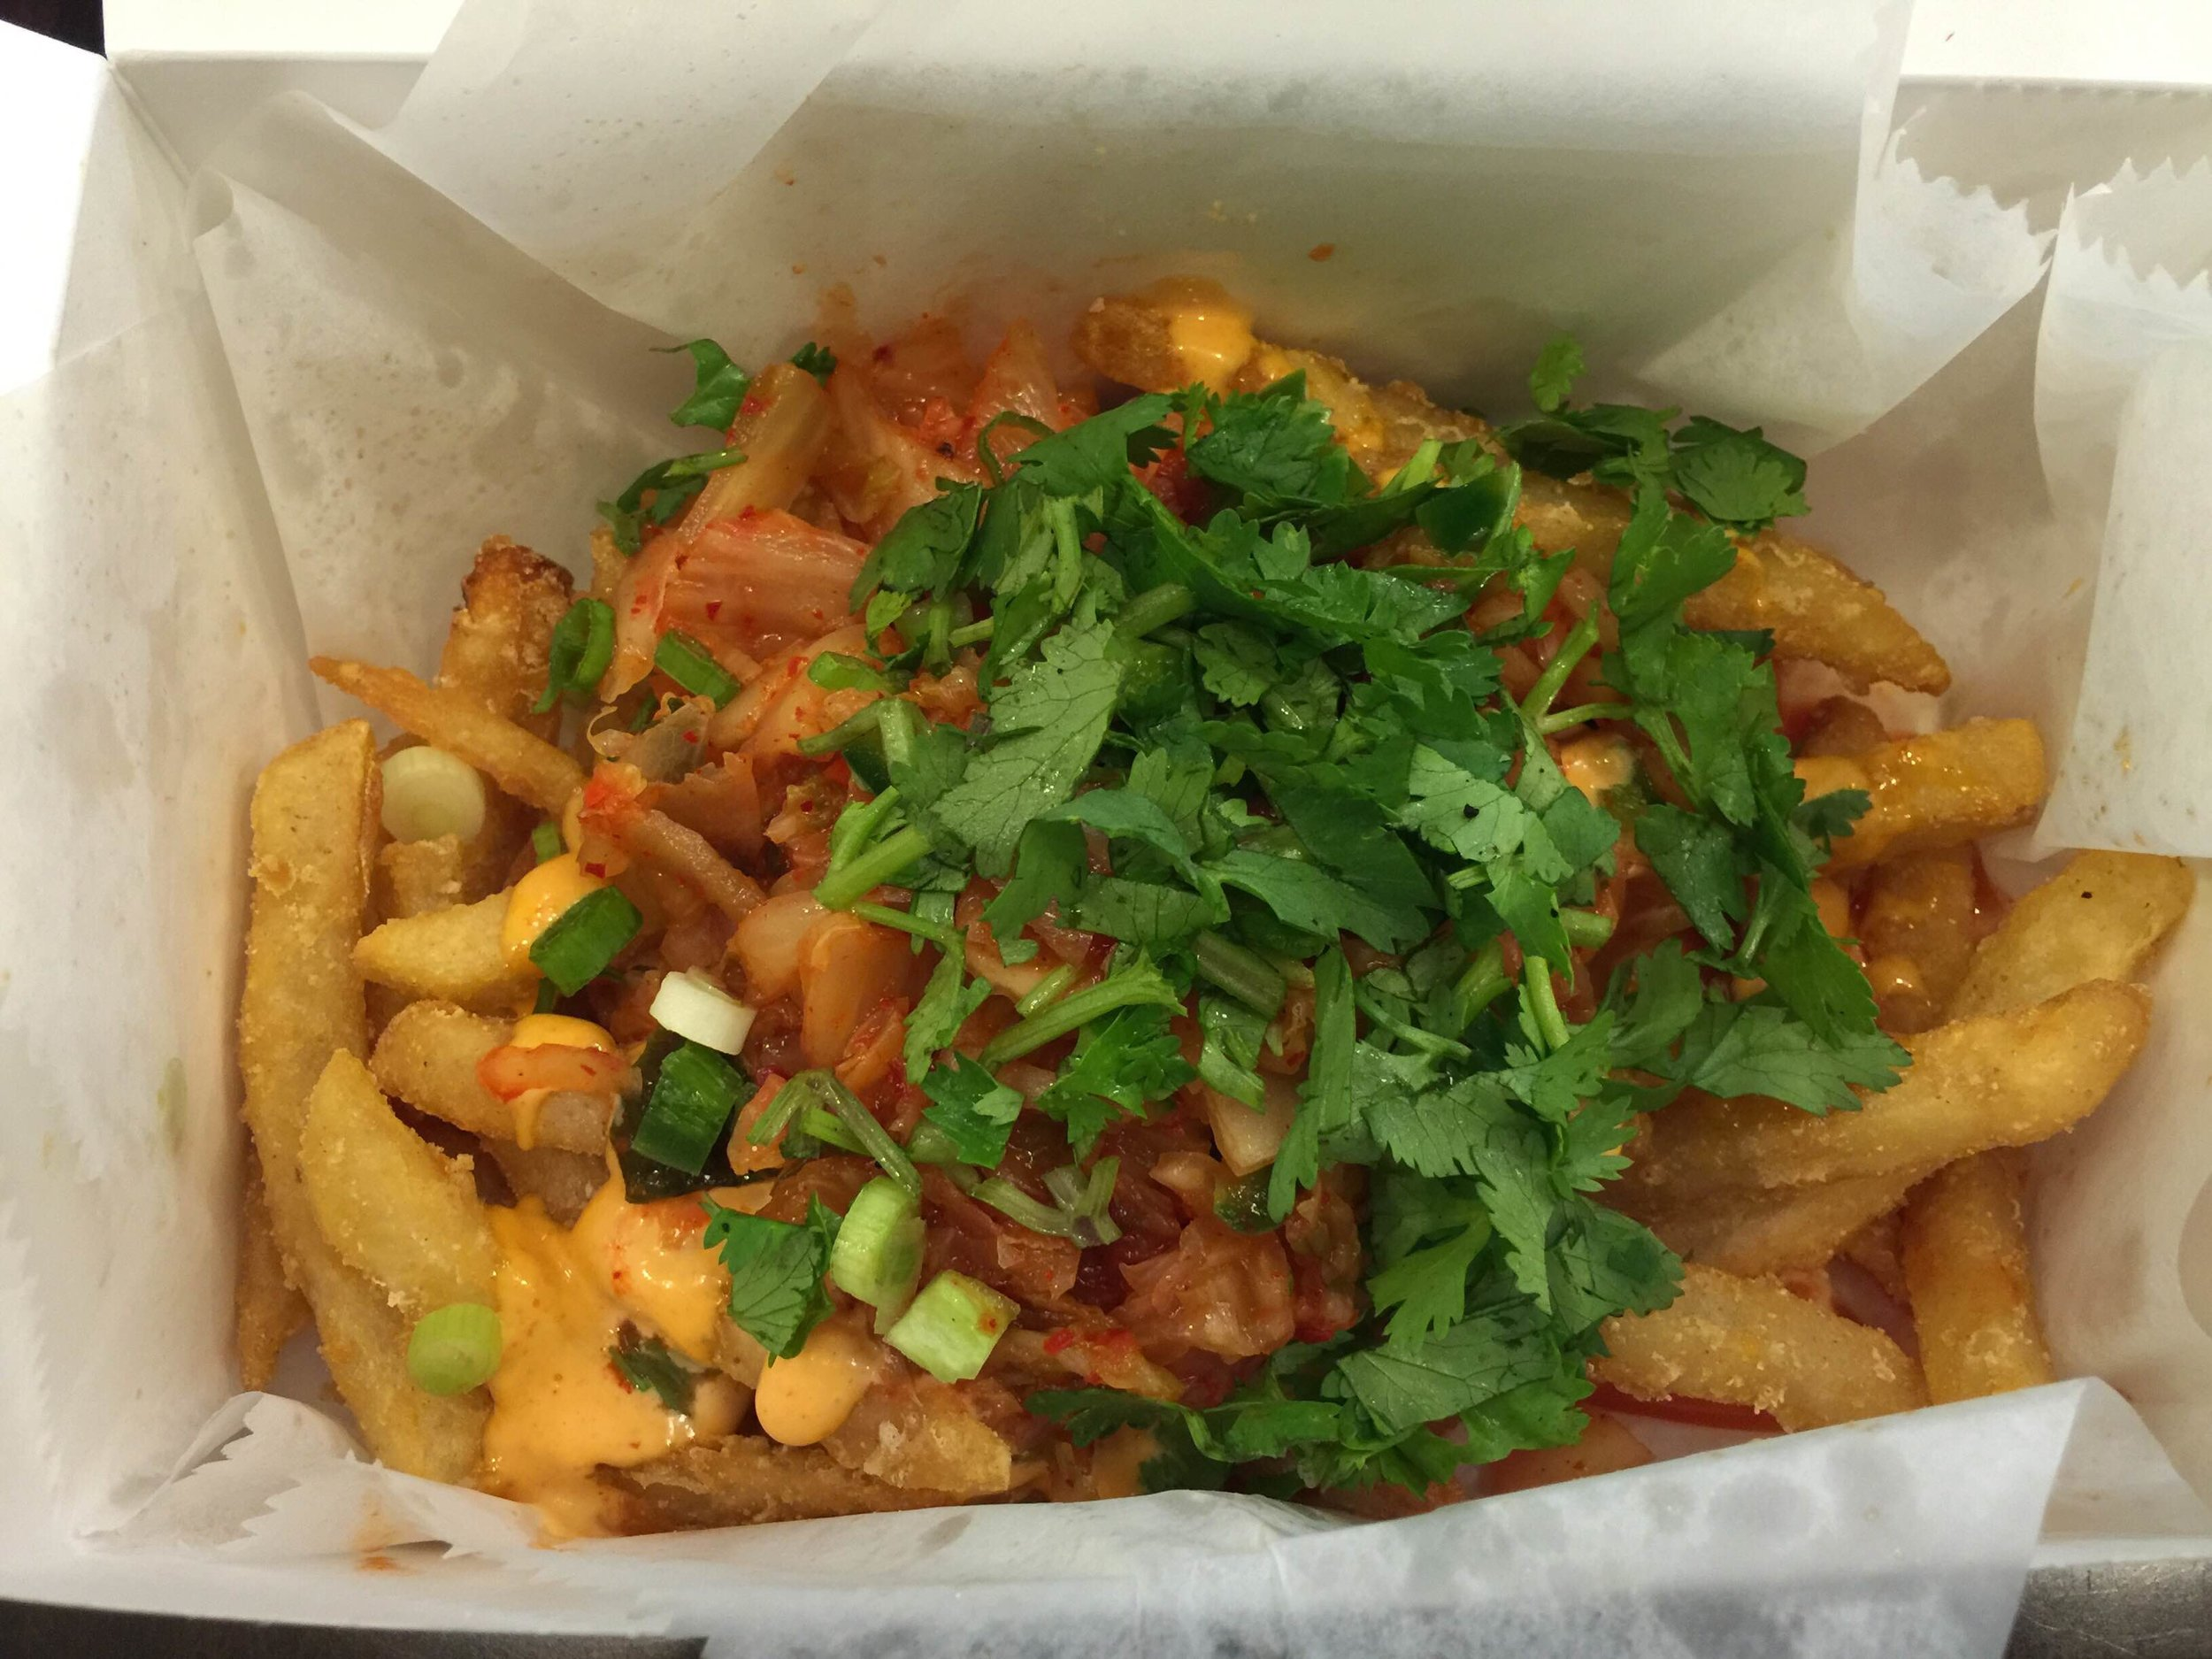 JoJu's Loaded Kimchi Fries. They also do Loaded Banh Mi Fries which are the ingredients of a Banh Mi dumped all over french fries. Disgustingly awesome.